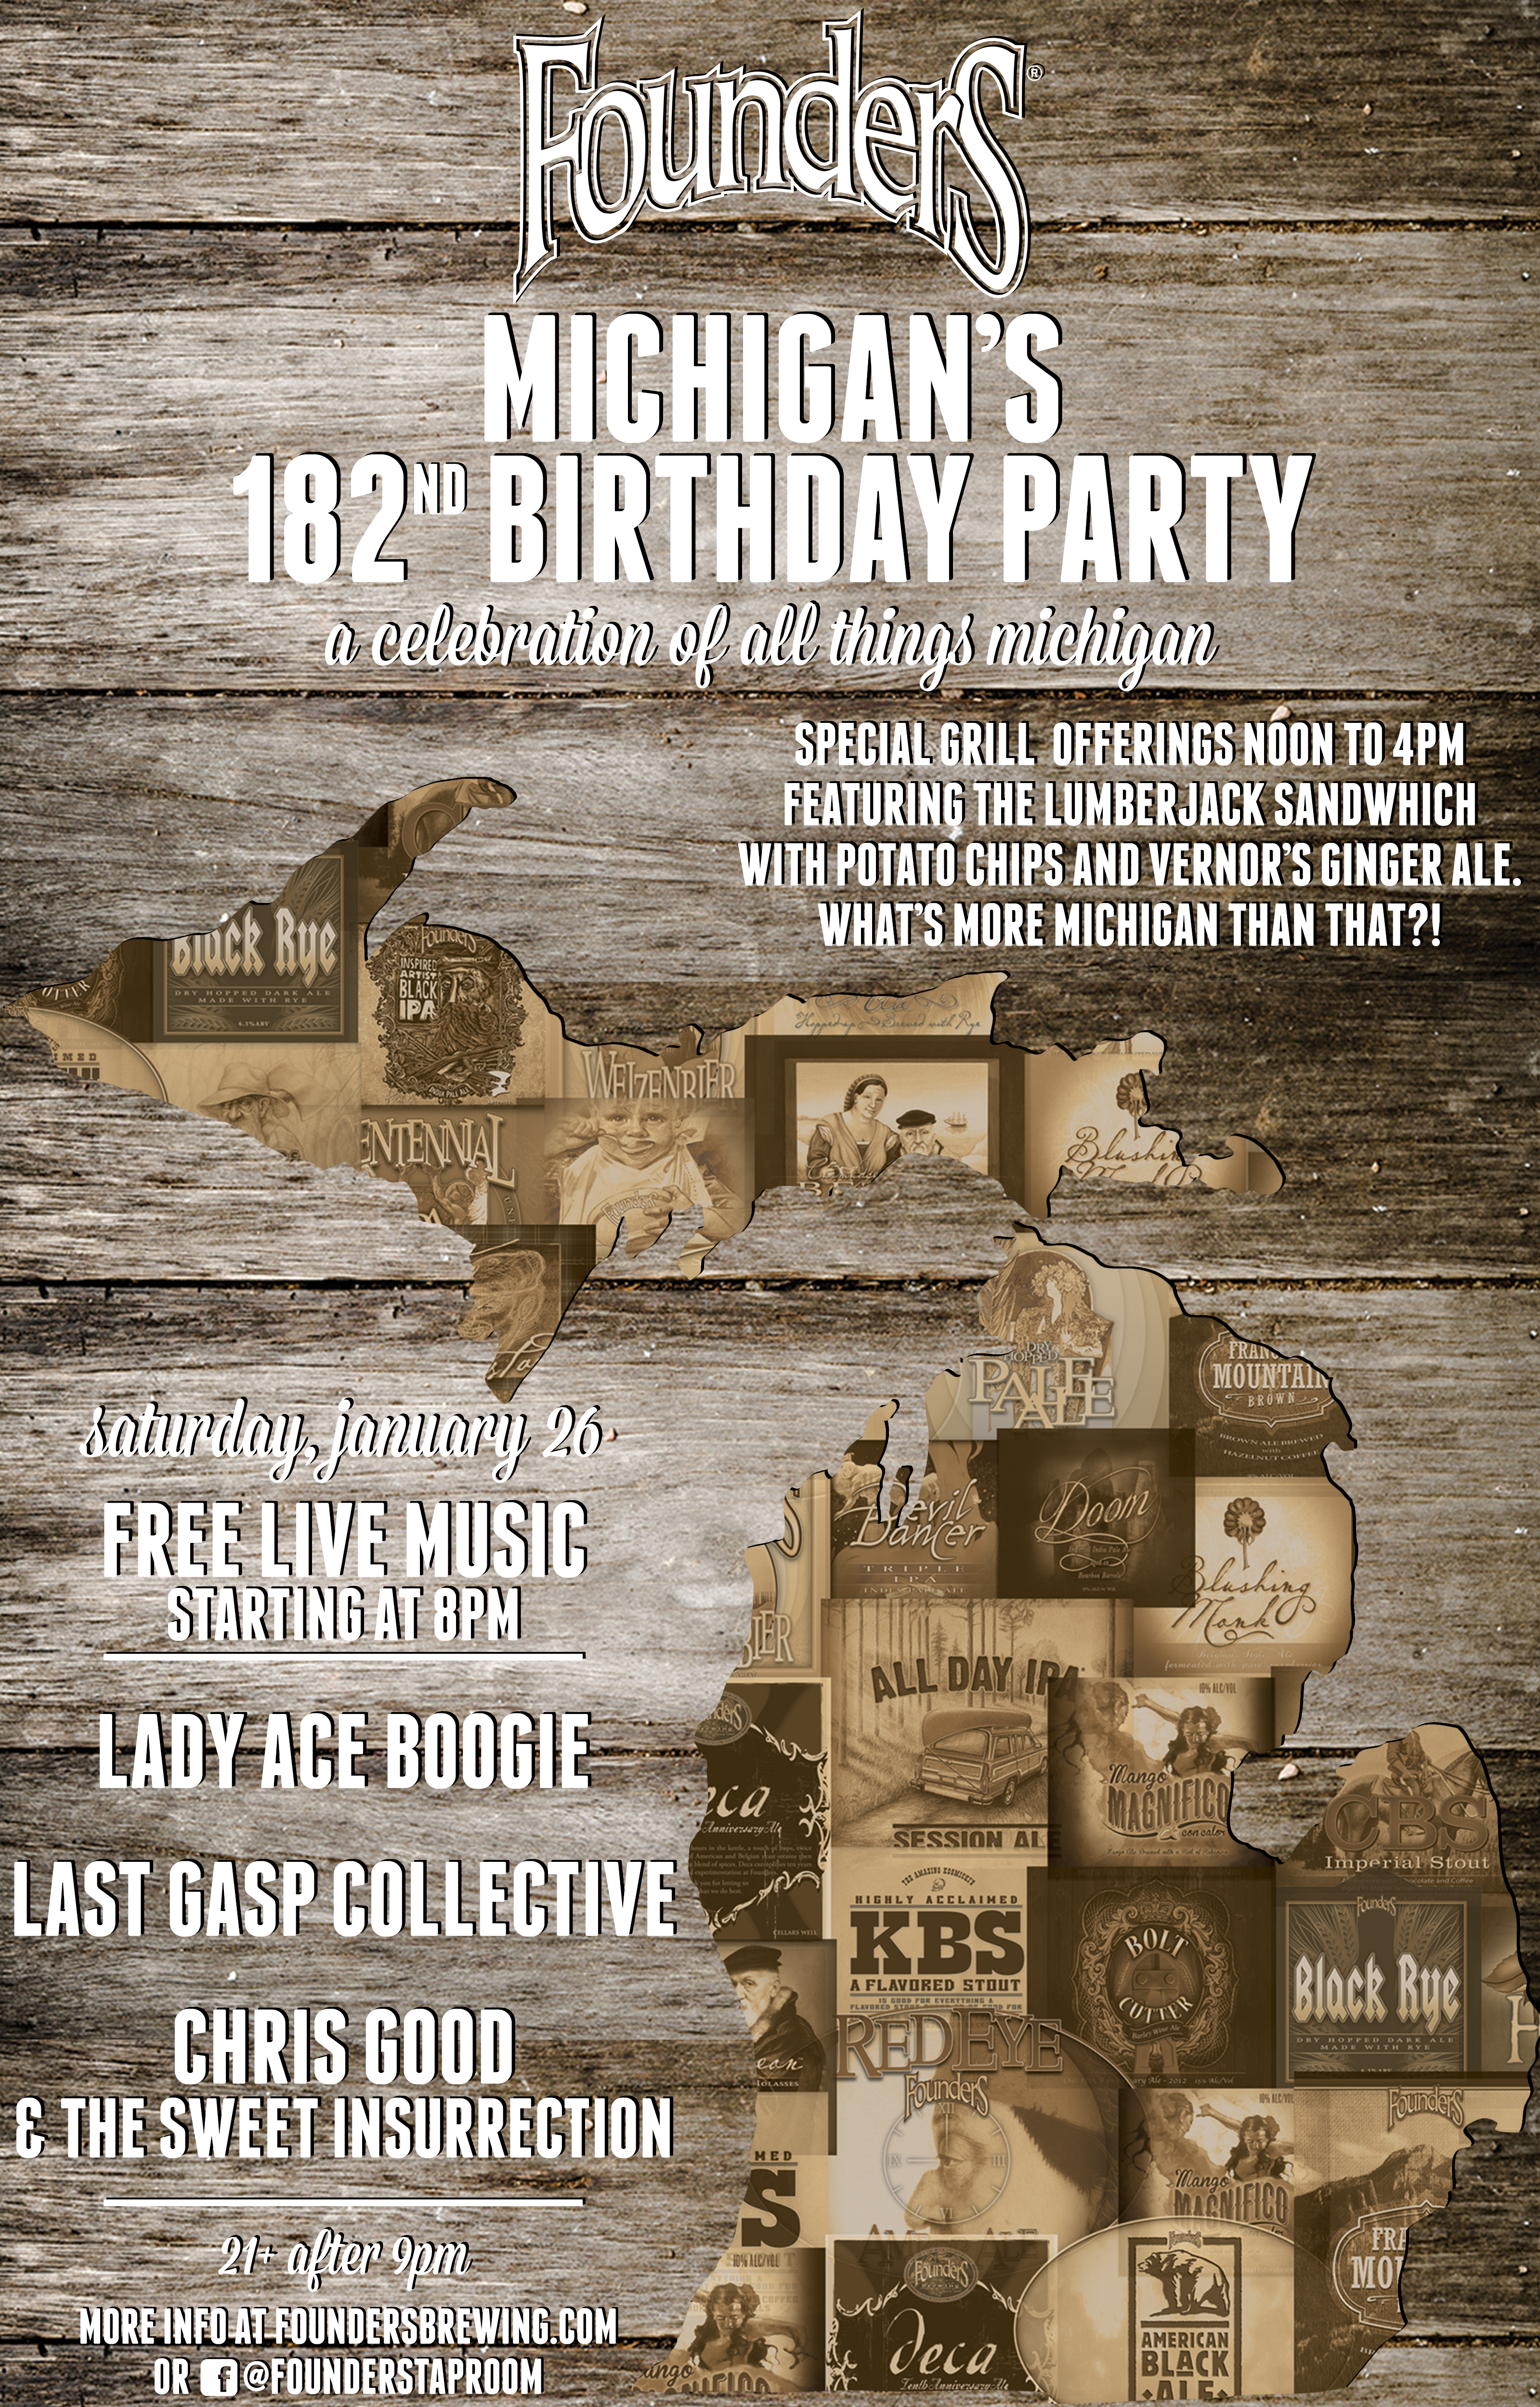 Founders Michigan's 182nd Birthday Party event poster